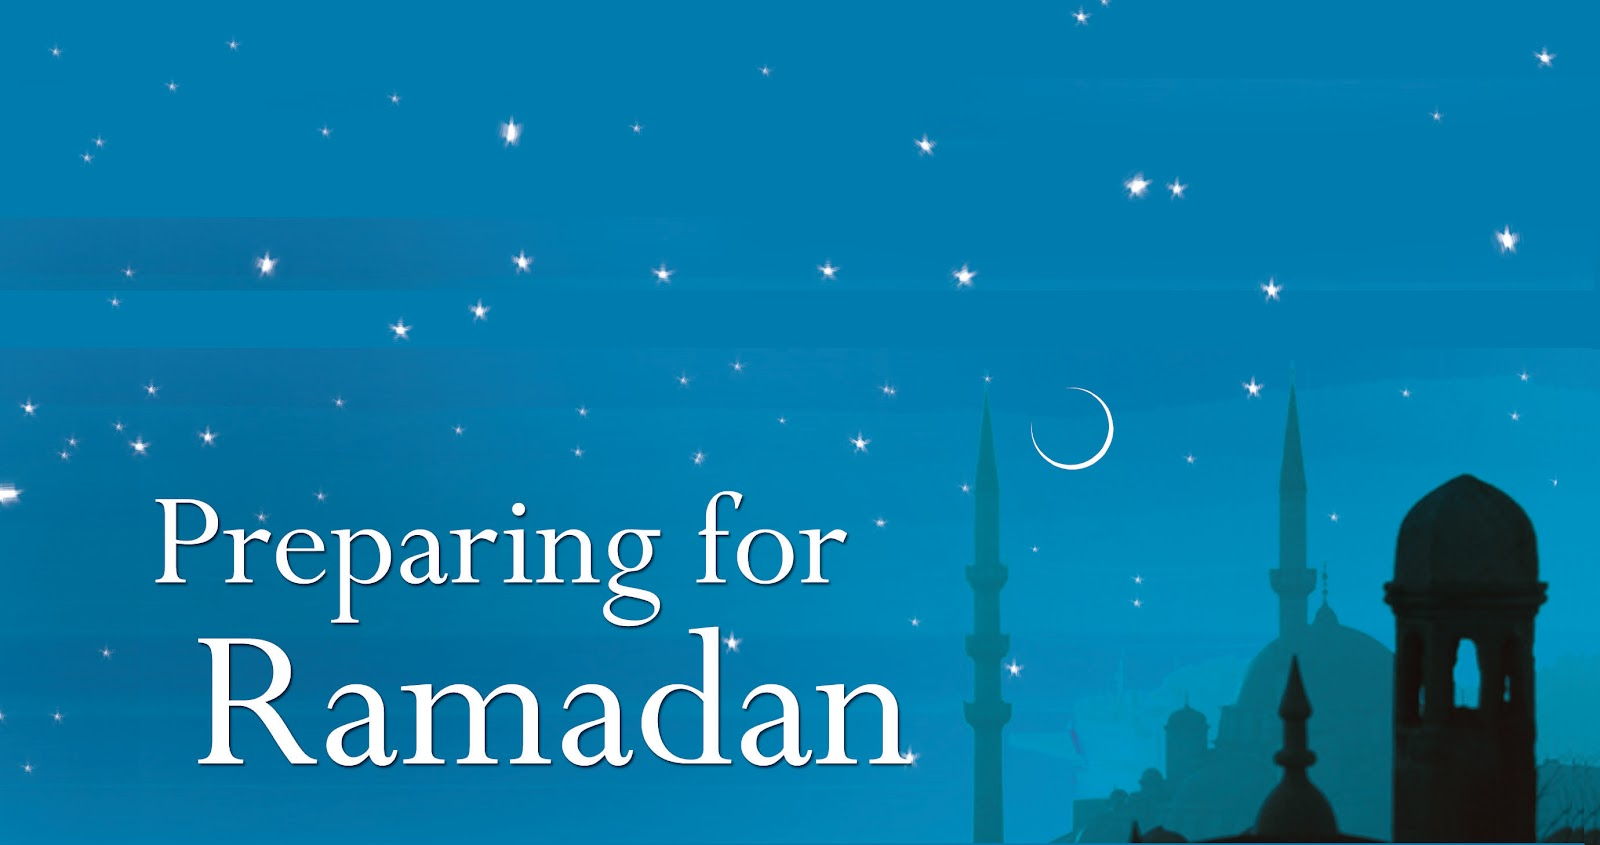 How can I prepare for Ramadan, make this Ramadan a landmark in my life? Sheikh Assim Al-Hakeem gives precious practical tips to help you get ready for Ramadan..